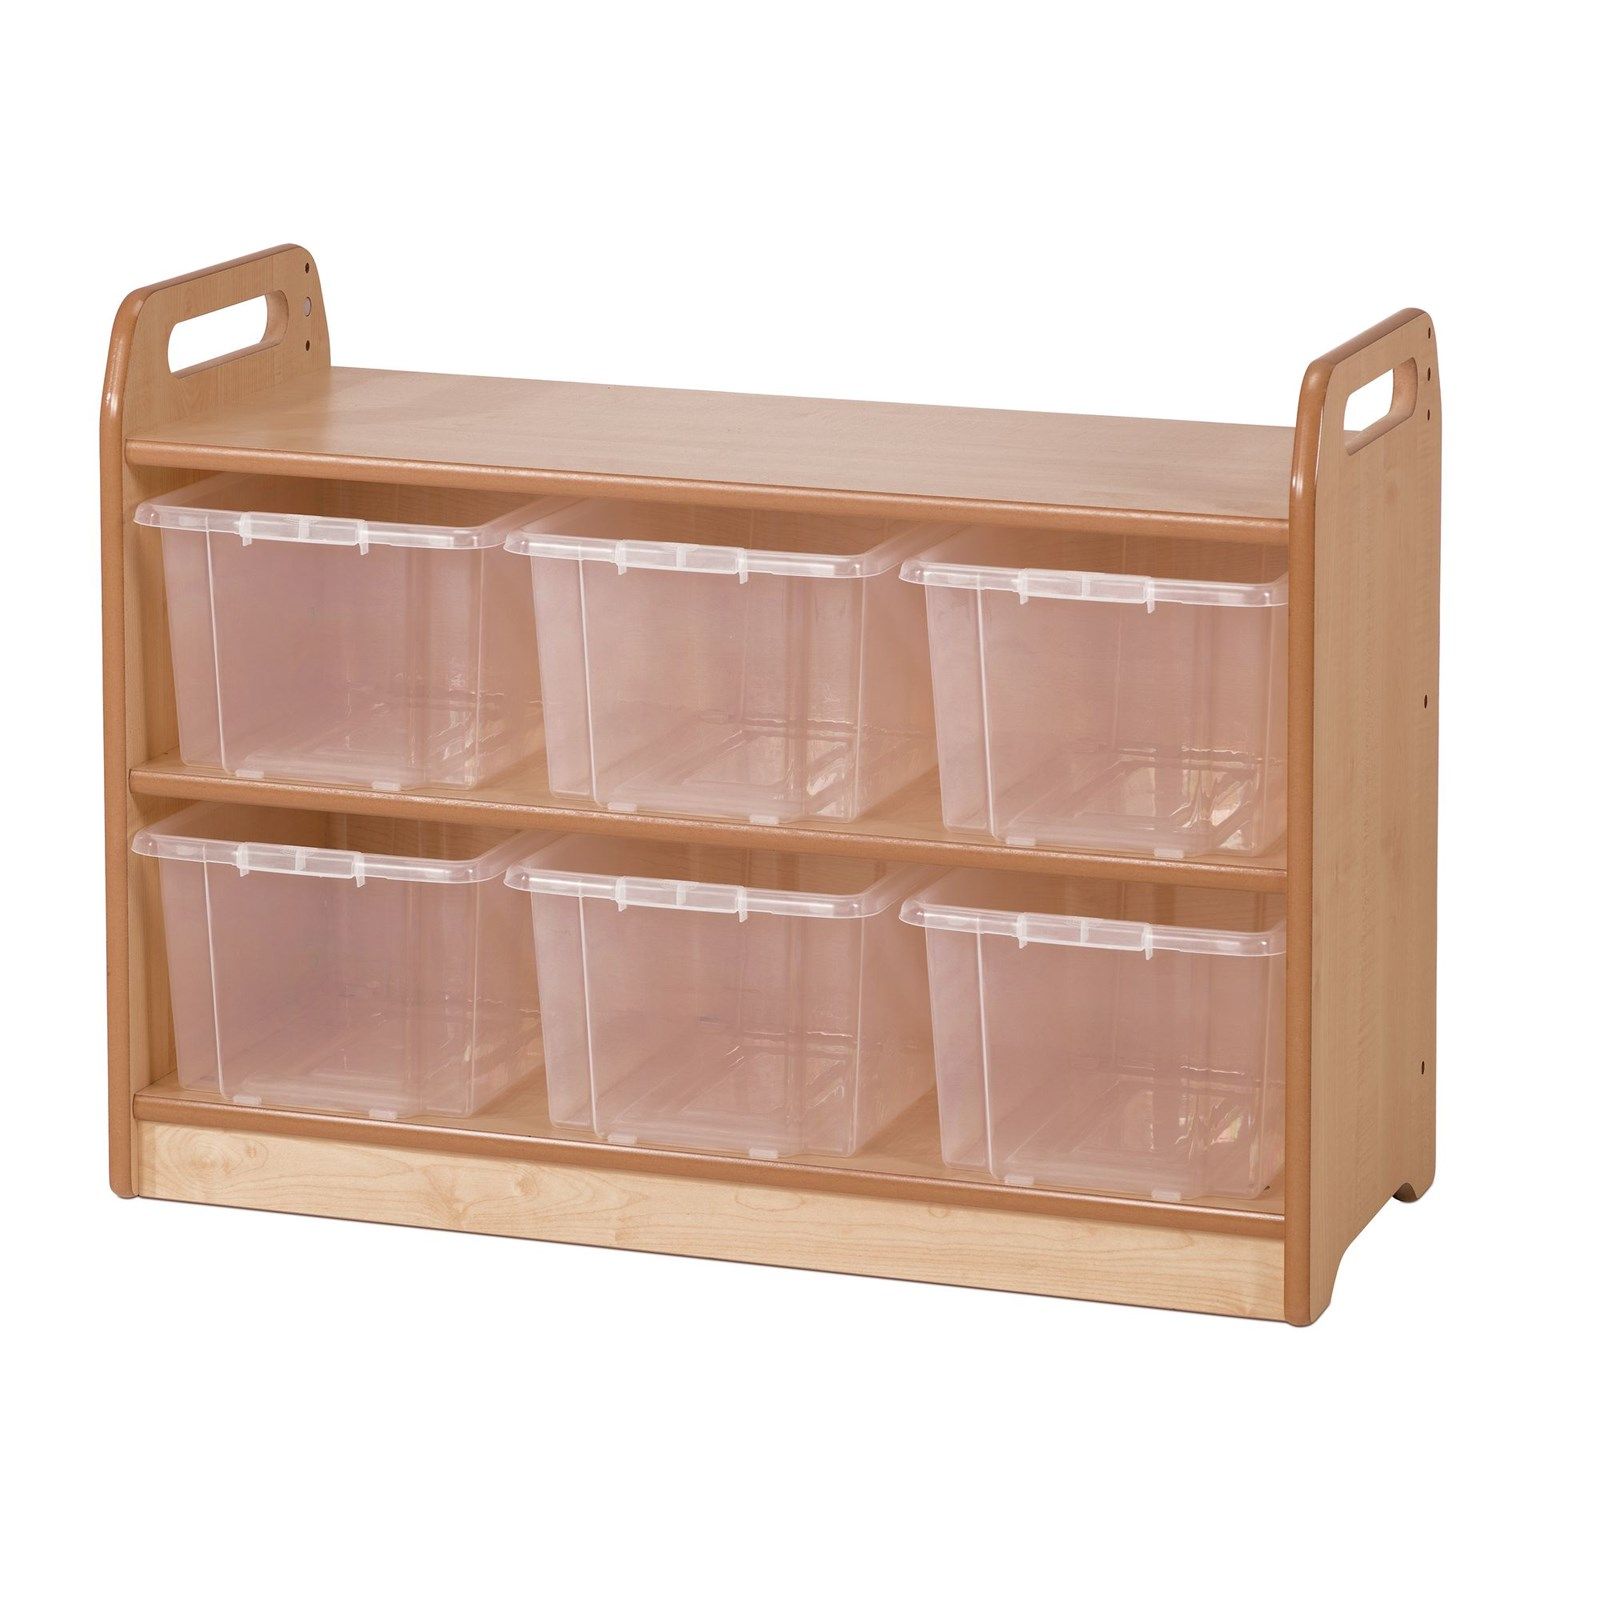 Playscapes Display Unit With Mirror - Clear Baskets